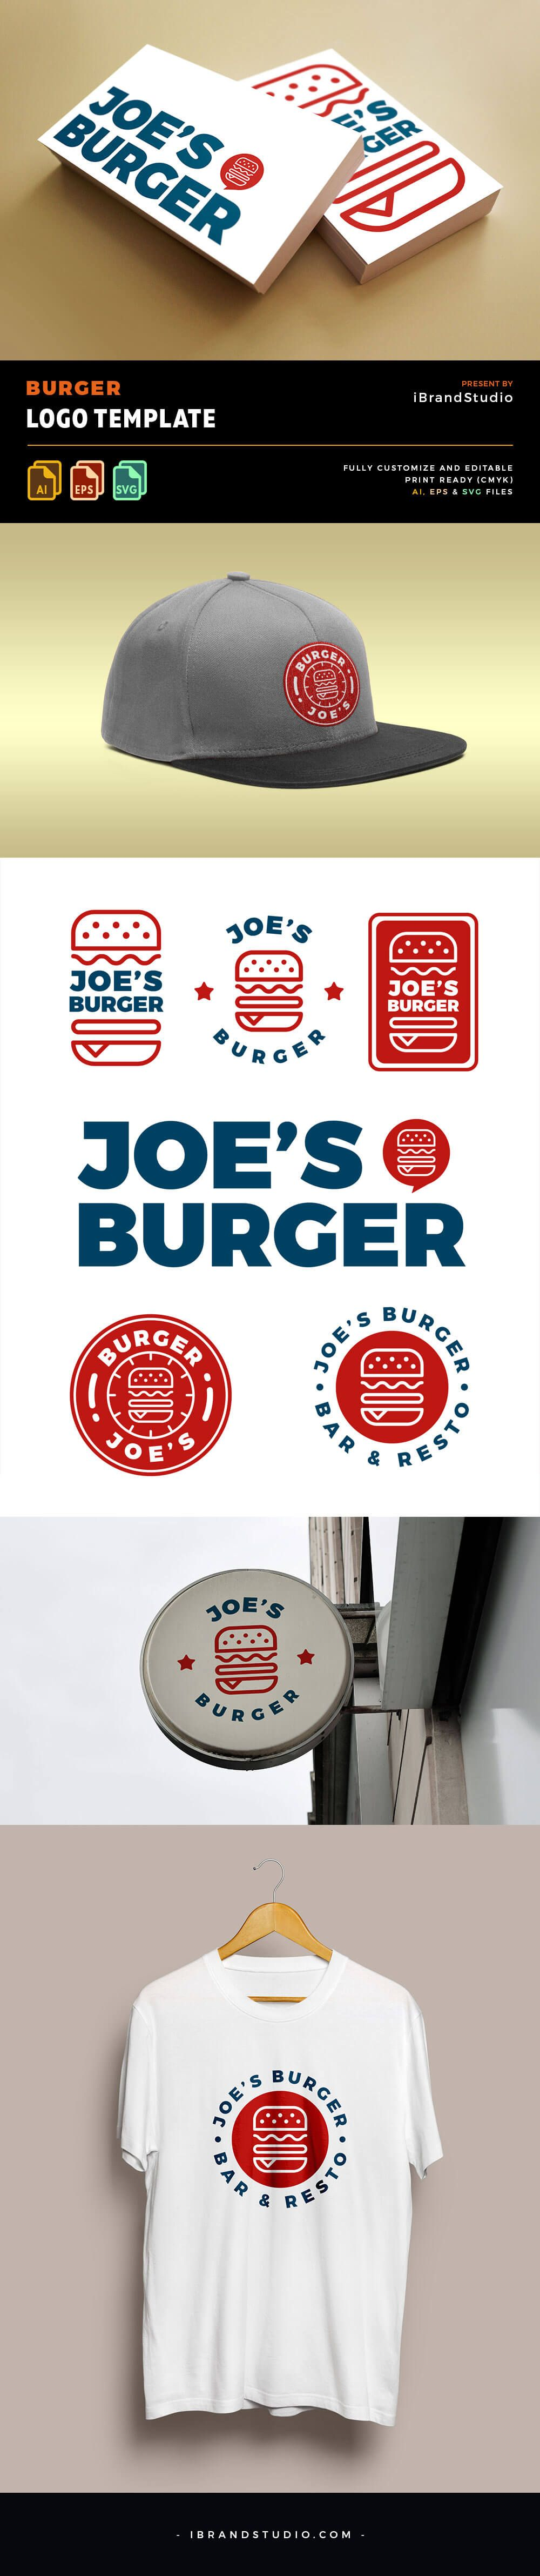 Freebie Burger Logo Templates (6 Styles, AI, EPS, SVG) in